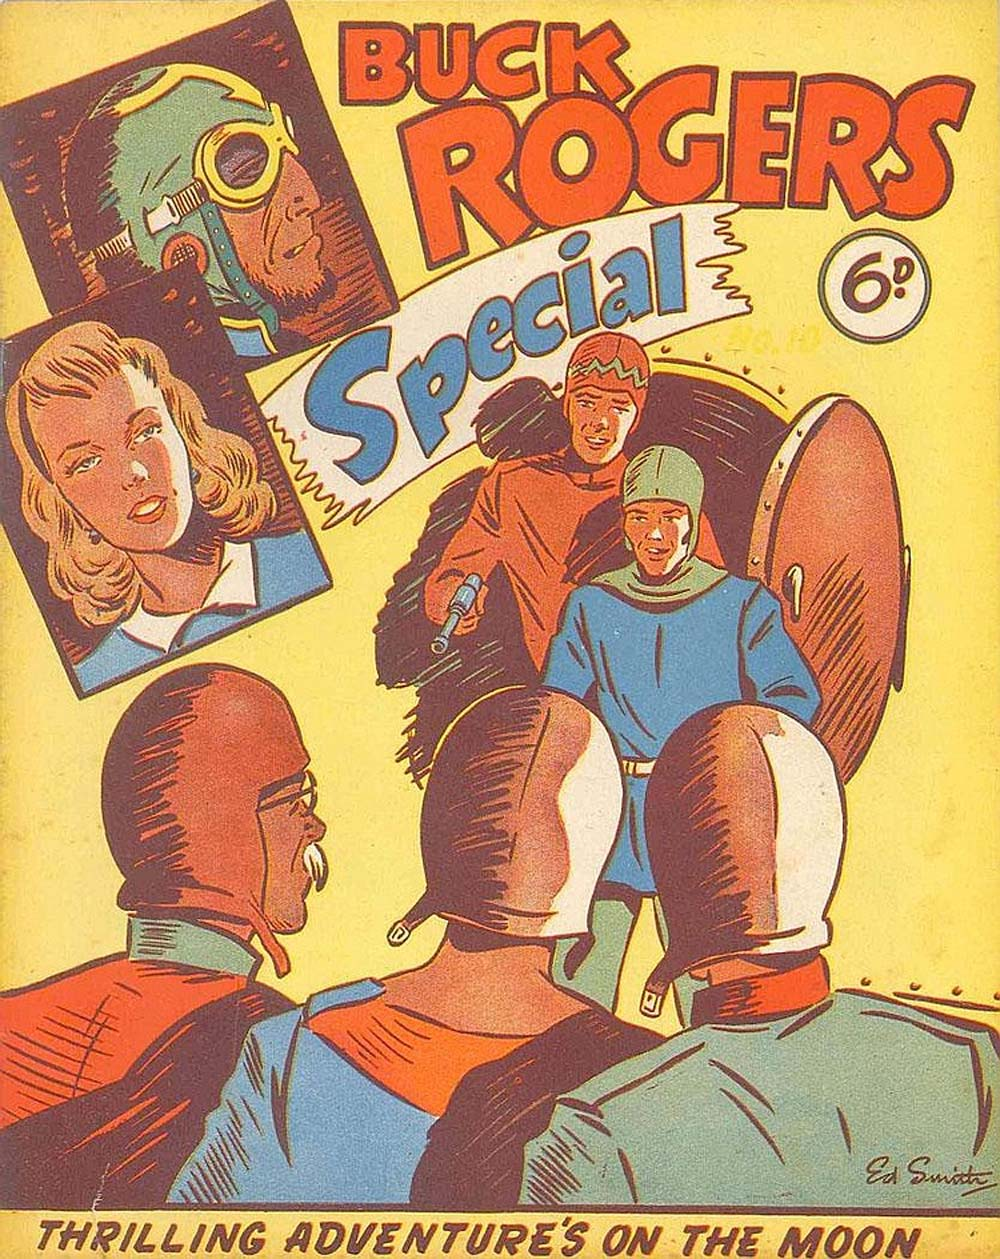 Buck Rogers Special